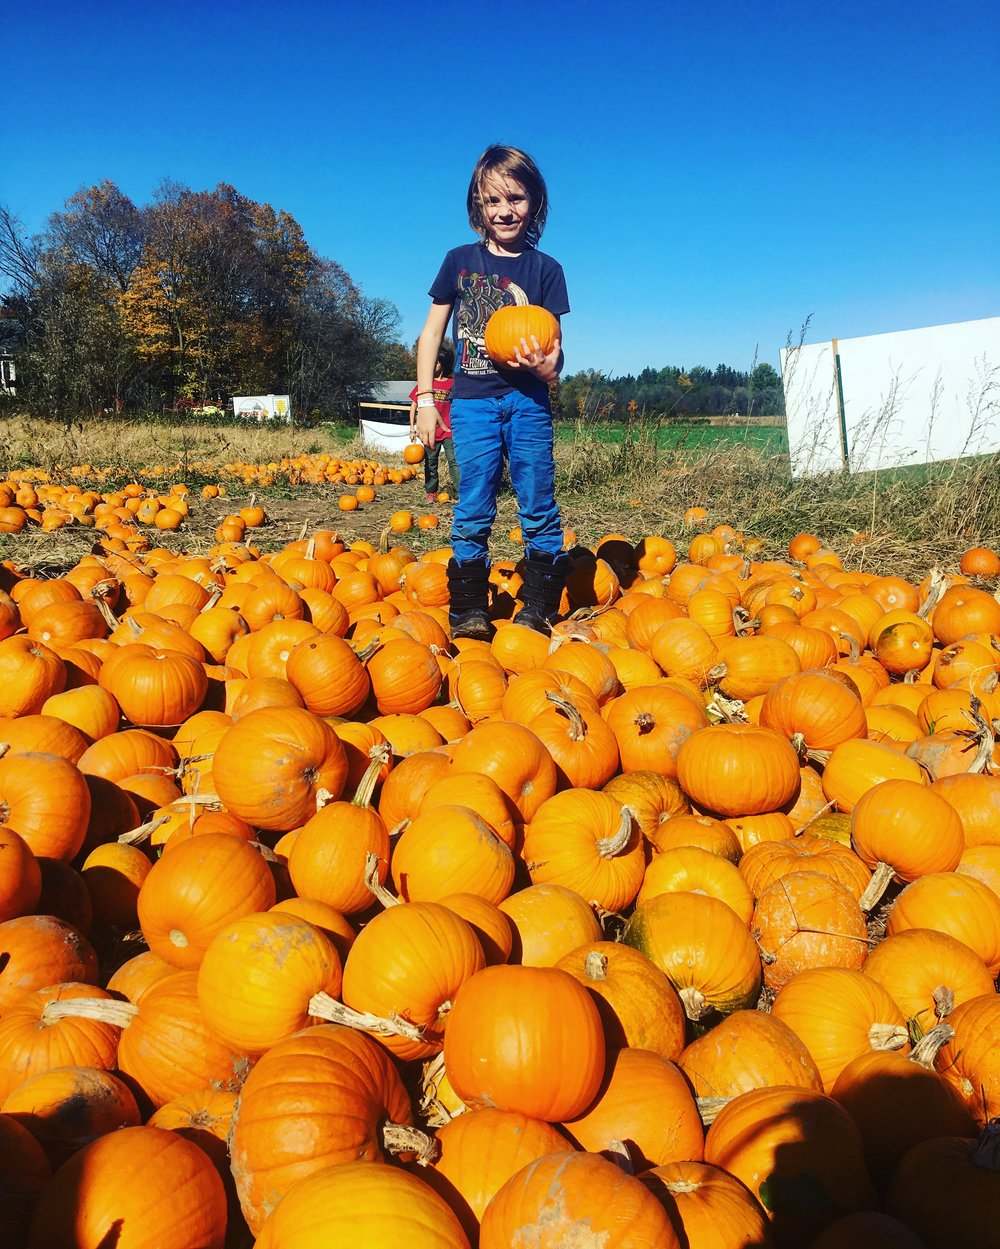 A day at the pumpkin patch.